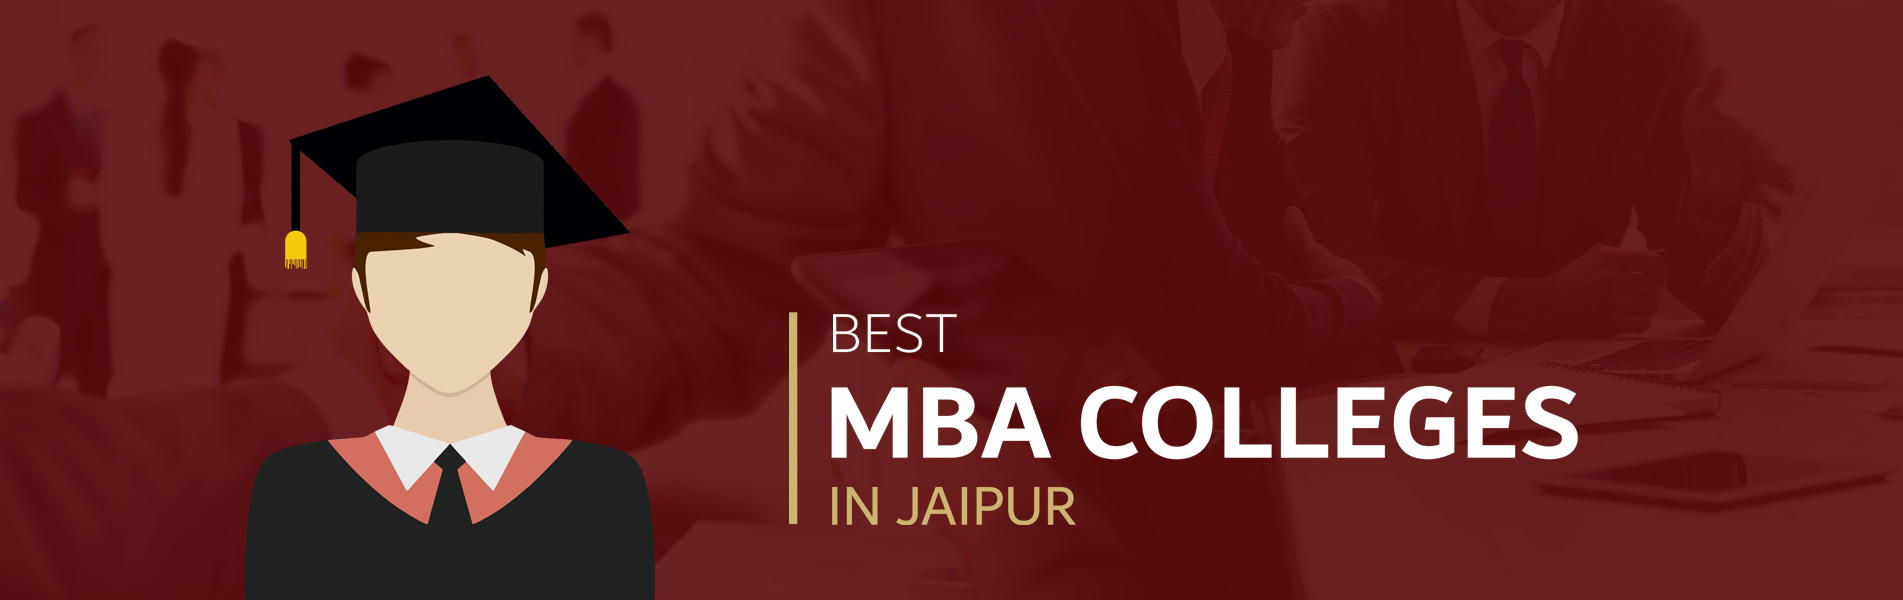 Best-MBA-Colleges-in-Jaipur